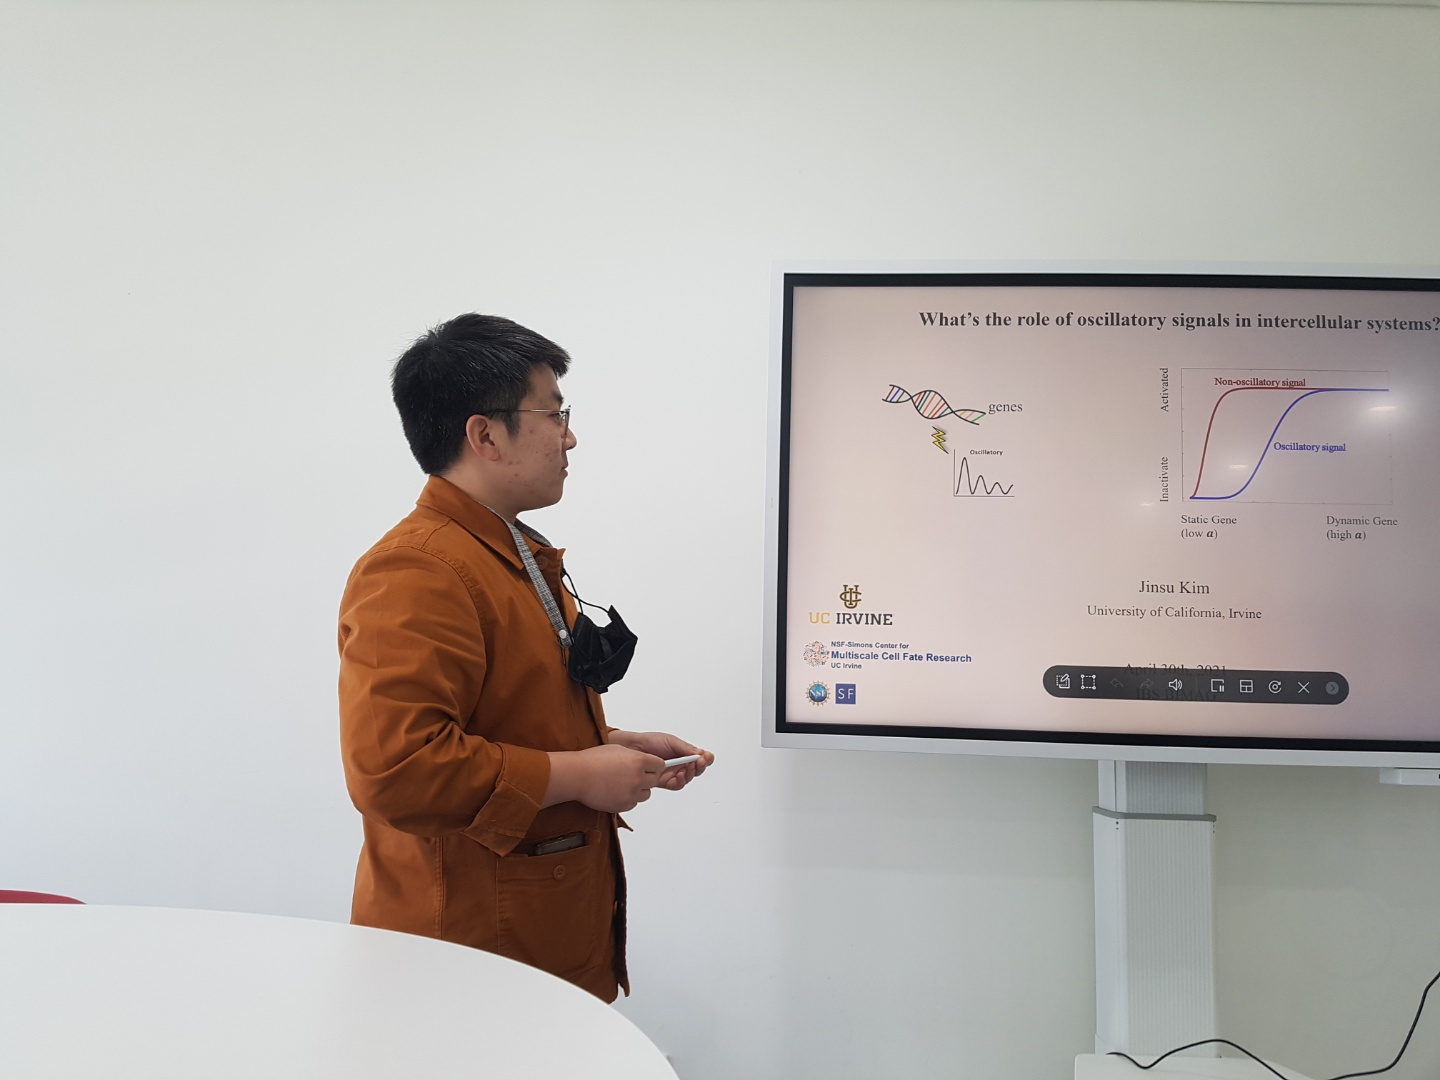 Jinsu Kim gave a talk on the role of oscillatory signals in intracellular systems at the IBS Biomedical Mathematics Seminar